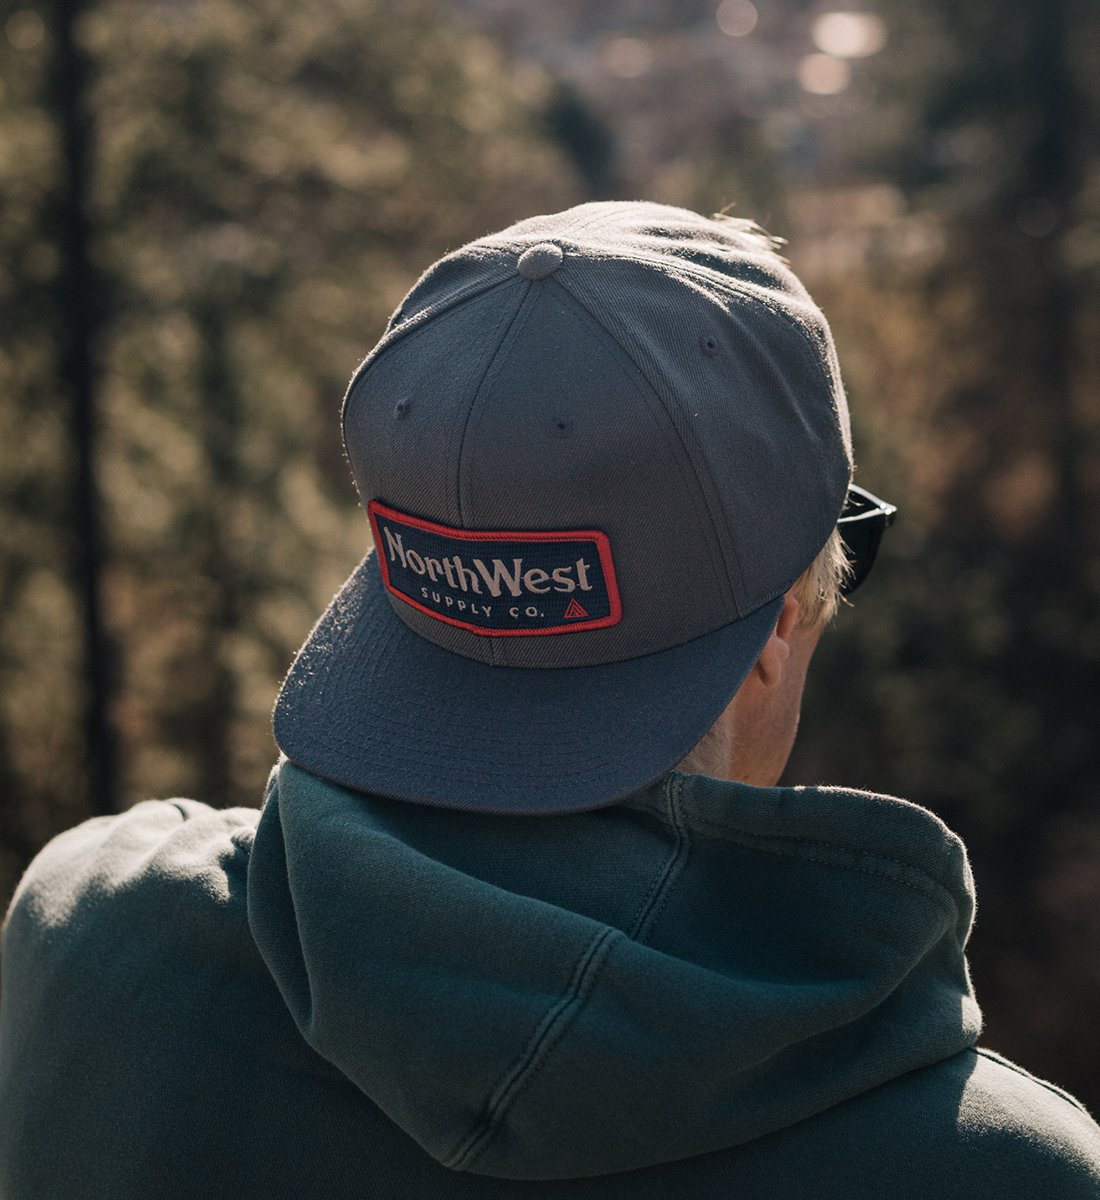 View Our Headwear Portfolio